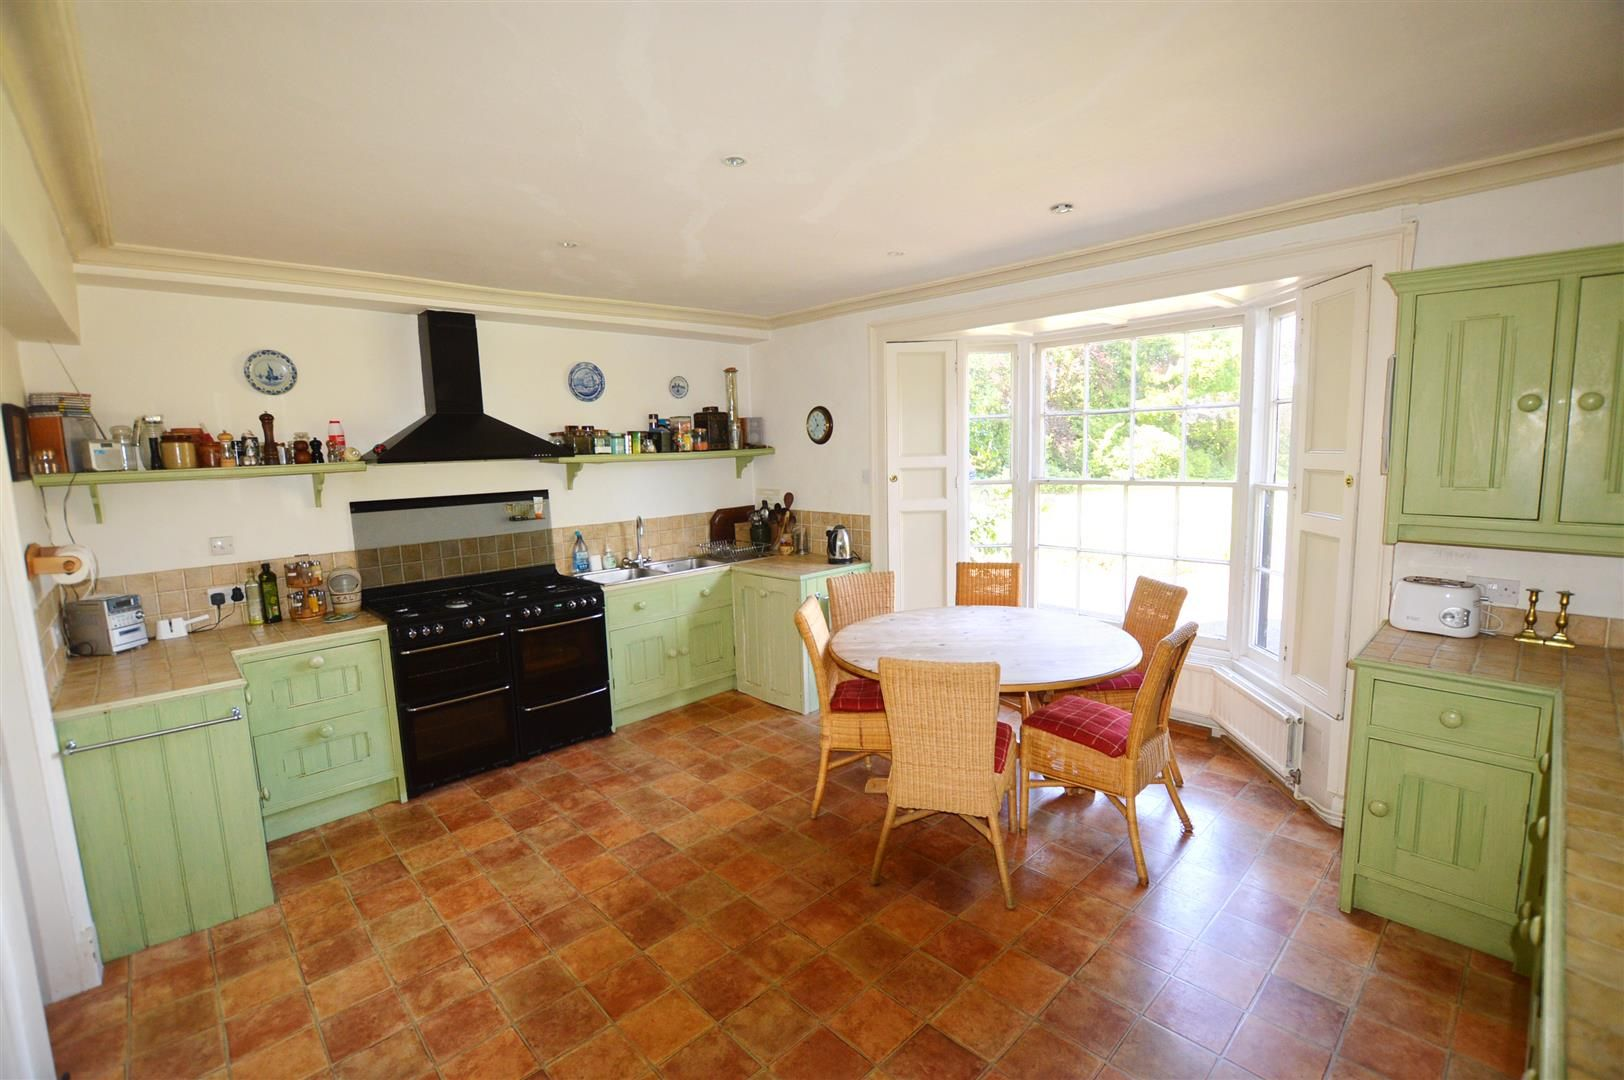 6 bed country-house for sale in Pembridge 4